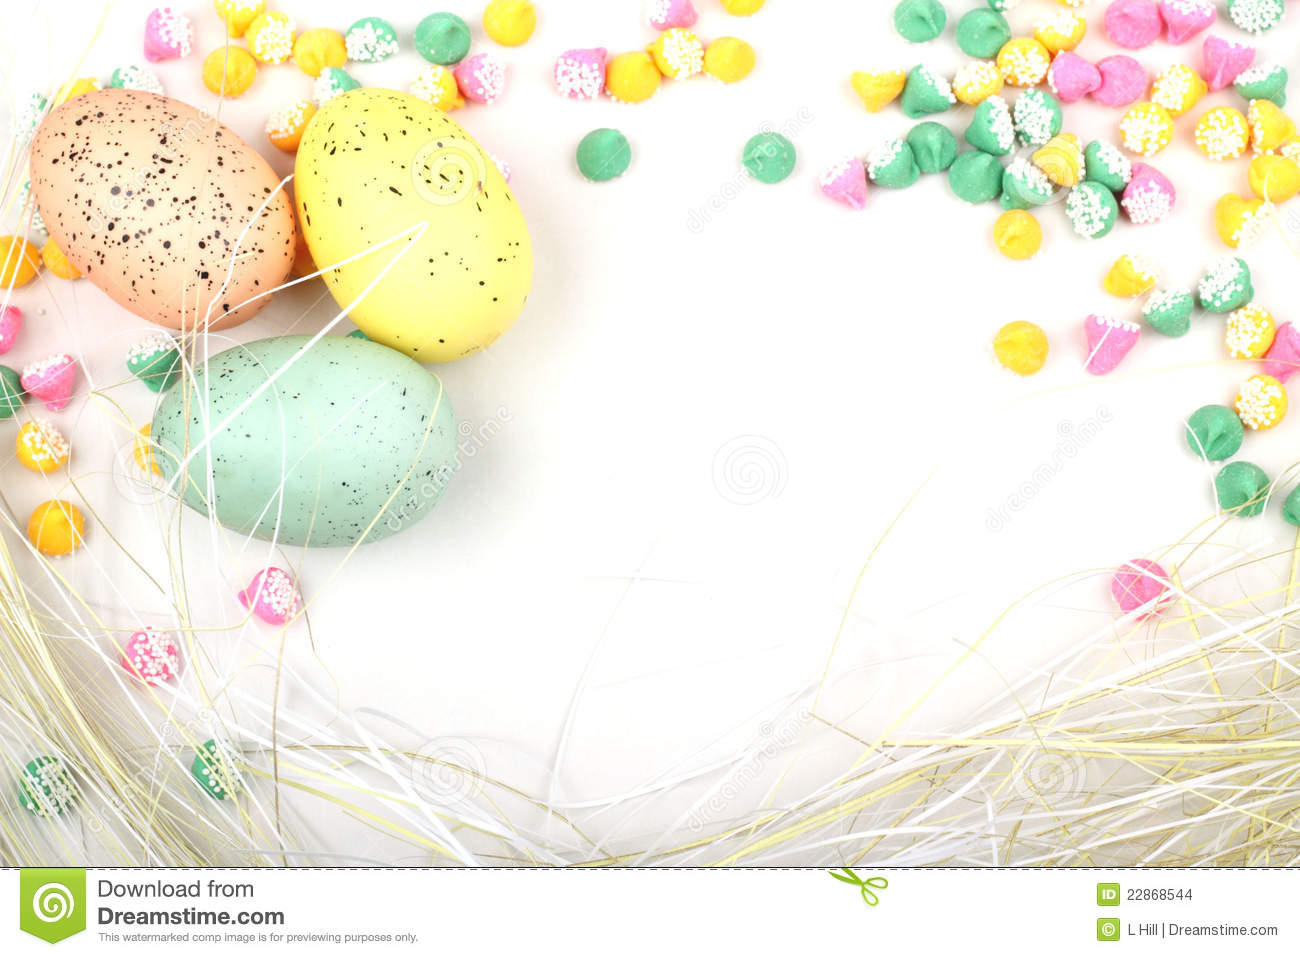 Easter Egg Straw Framed Background Stock Images - Image: 22868544